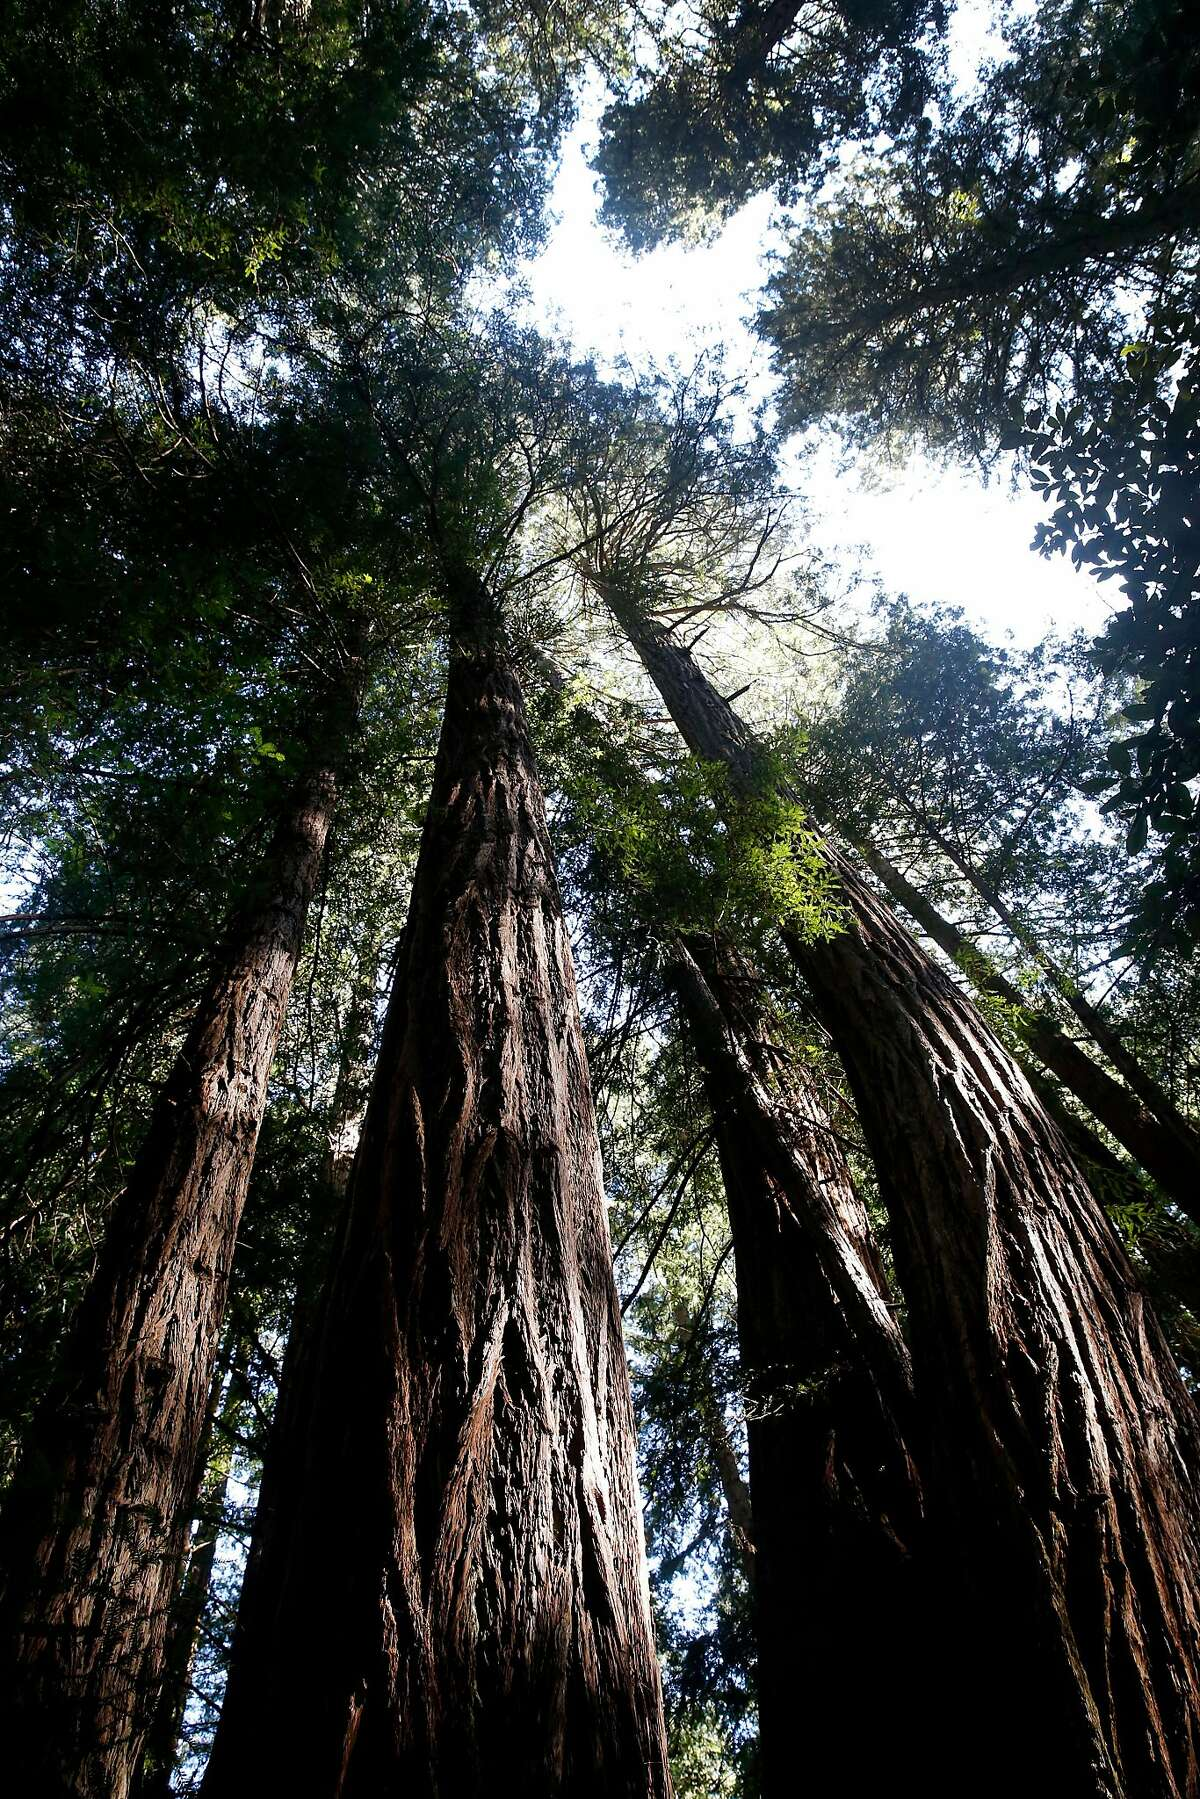 Old growth coast redwoods tower above the ground at Muir Woods National Monument in Mill Valley, Calif. on Tuesday, April 17, 2018. The Save the Redwoods League has released its first ever State of Redwoods Conservation Report.